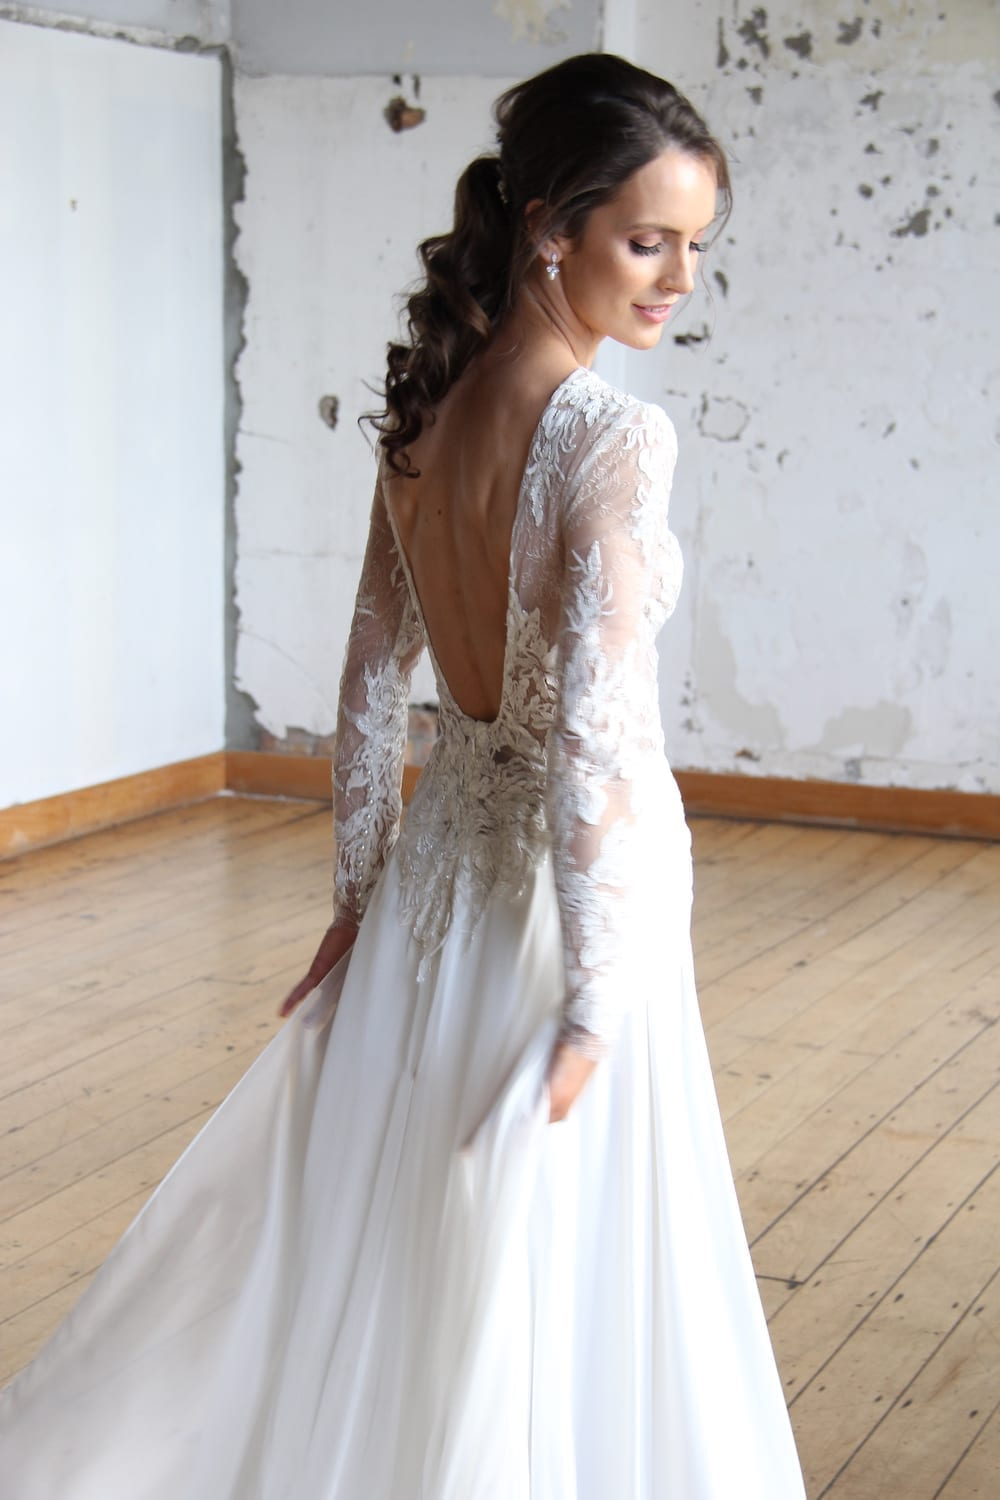 Female model wearing Vinka Design Modern Muse Wedding Dress. In chic warehouse the side detail of a gown with a high neckline and low back in silver-edged ivory lace, silk chiffon over viscose skirt with a train.